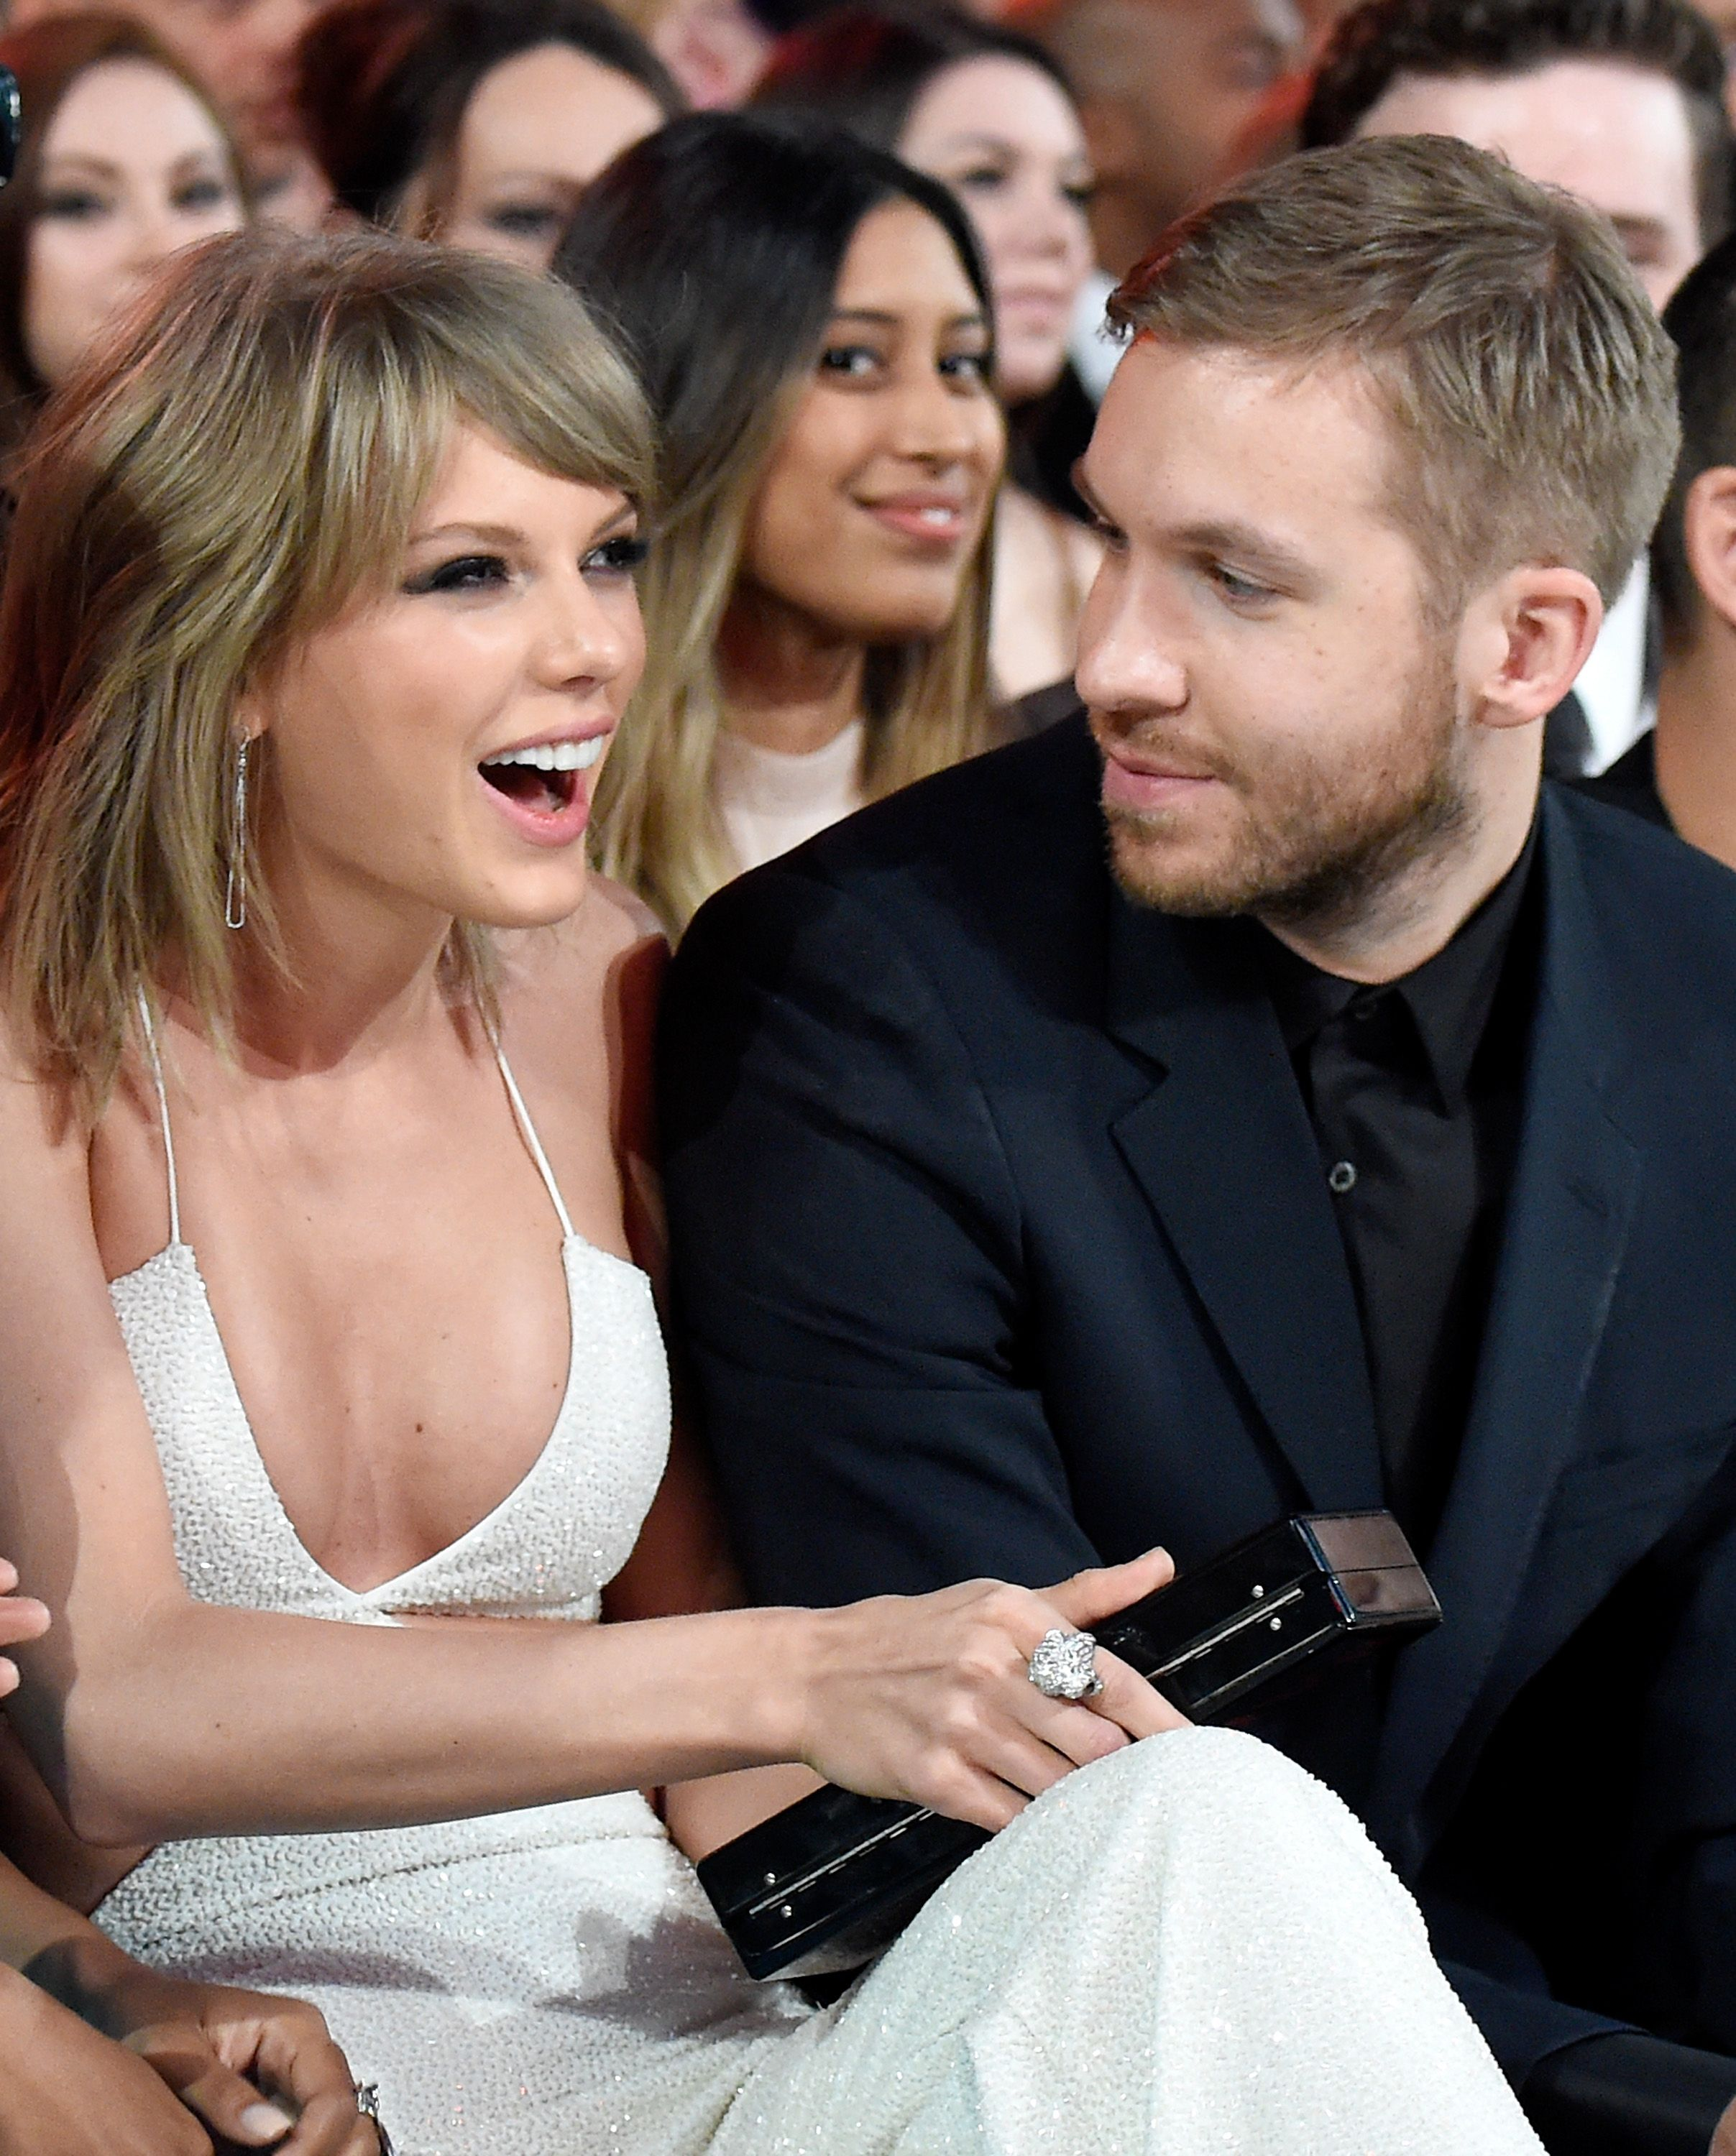 Calvin Harris Responds To Taylor Swift Break Up With Class